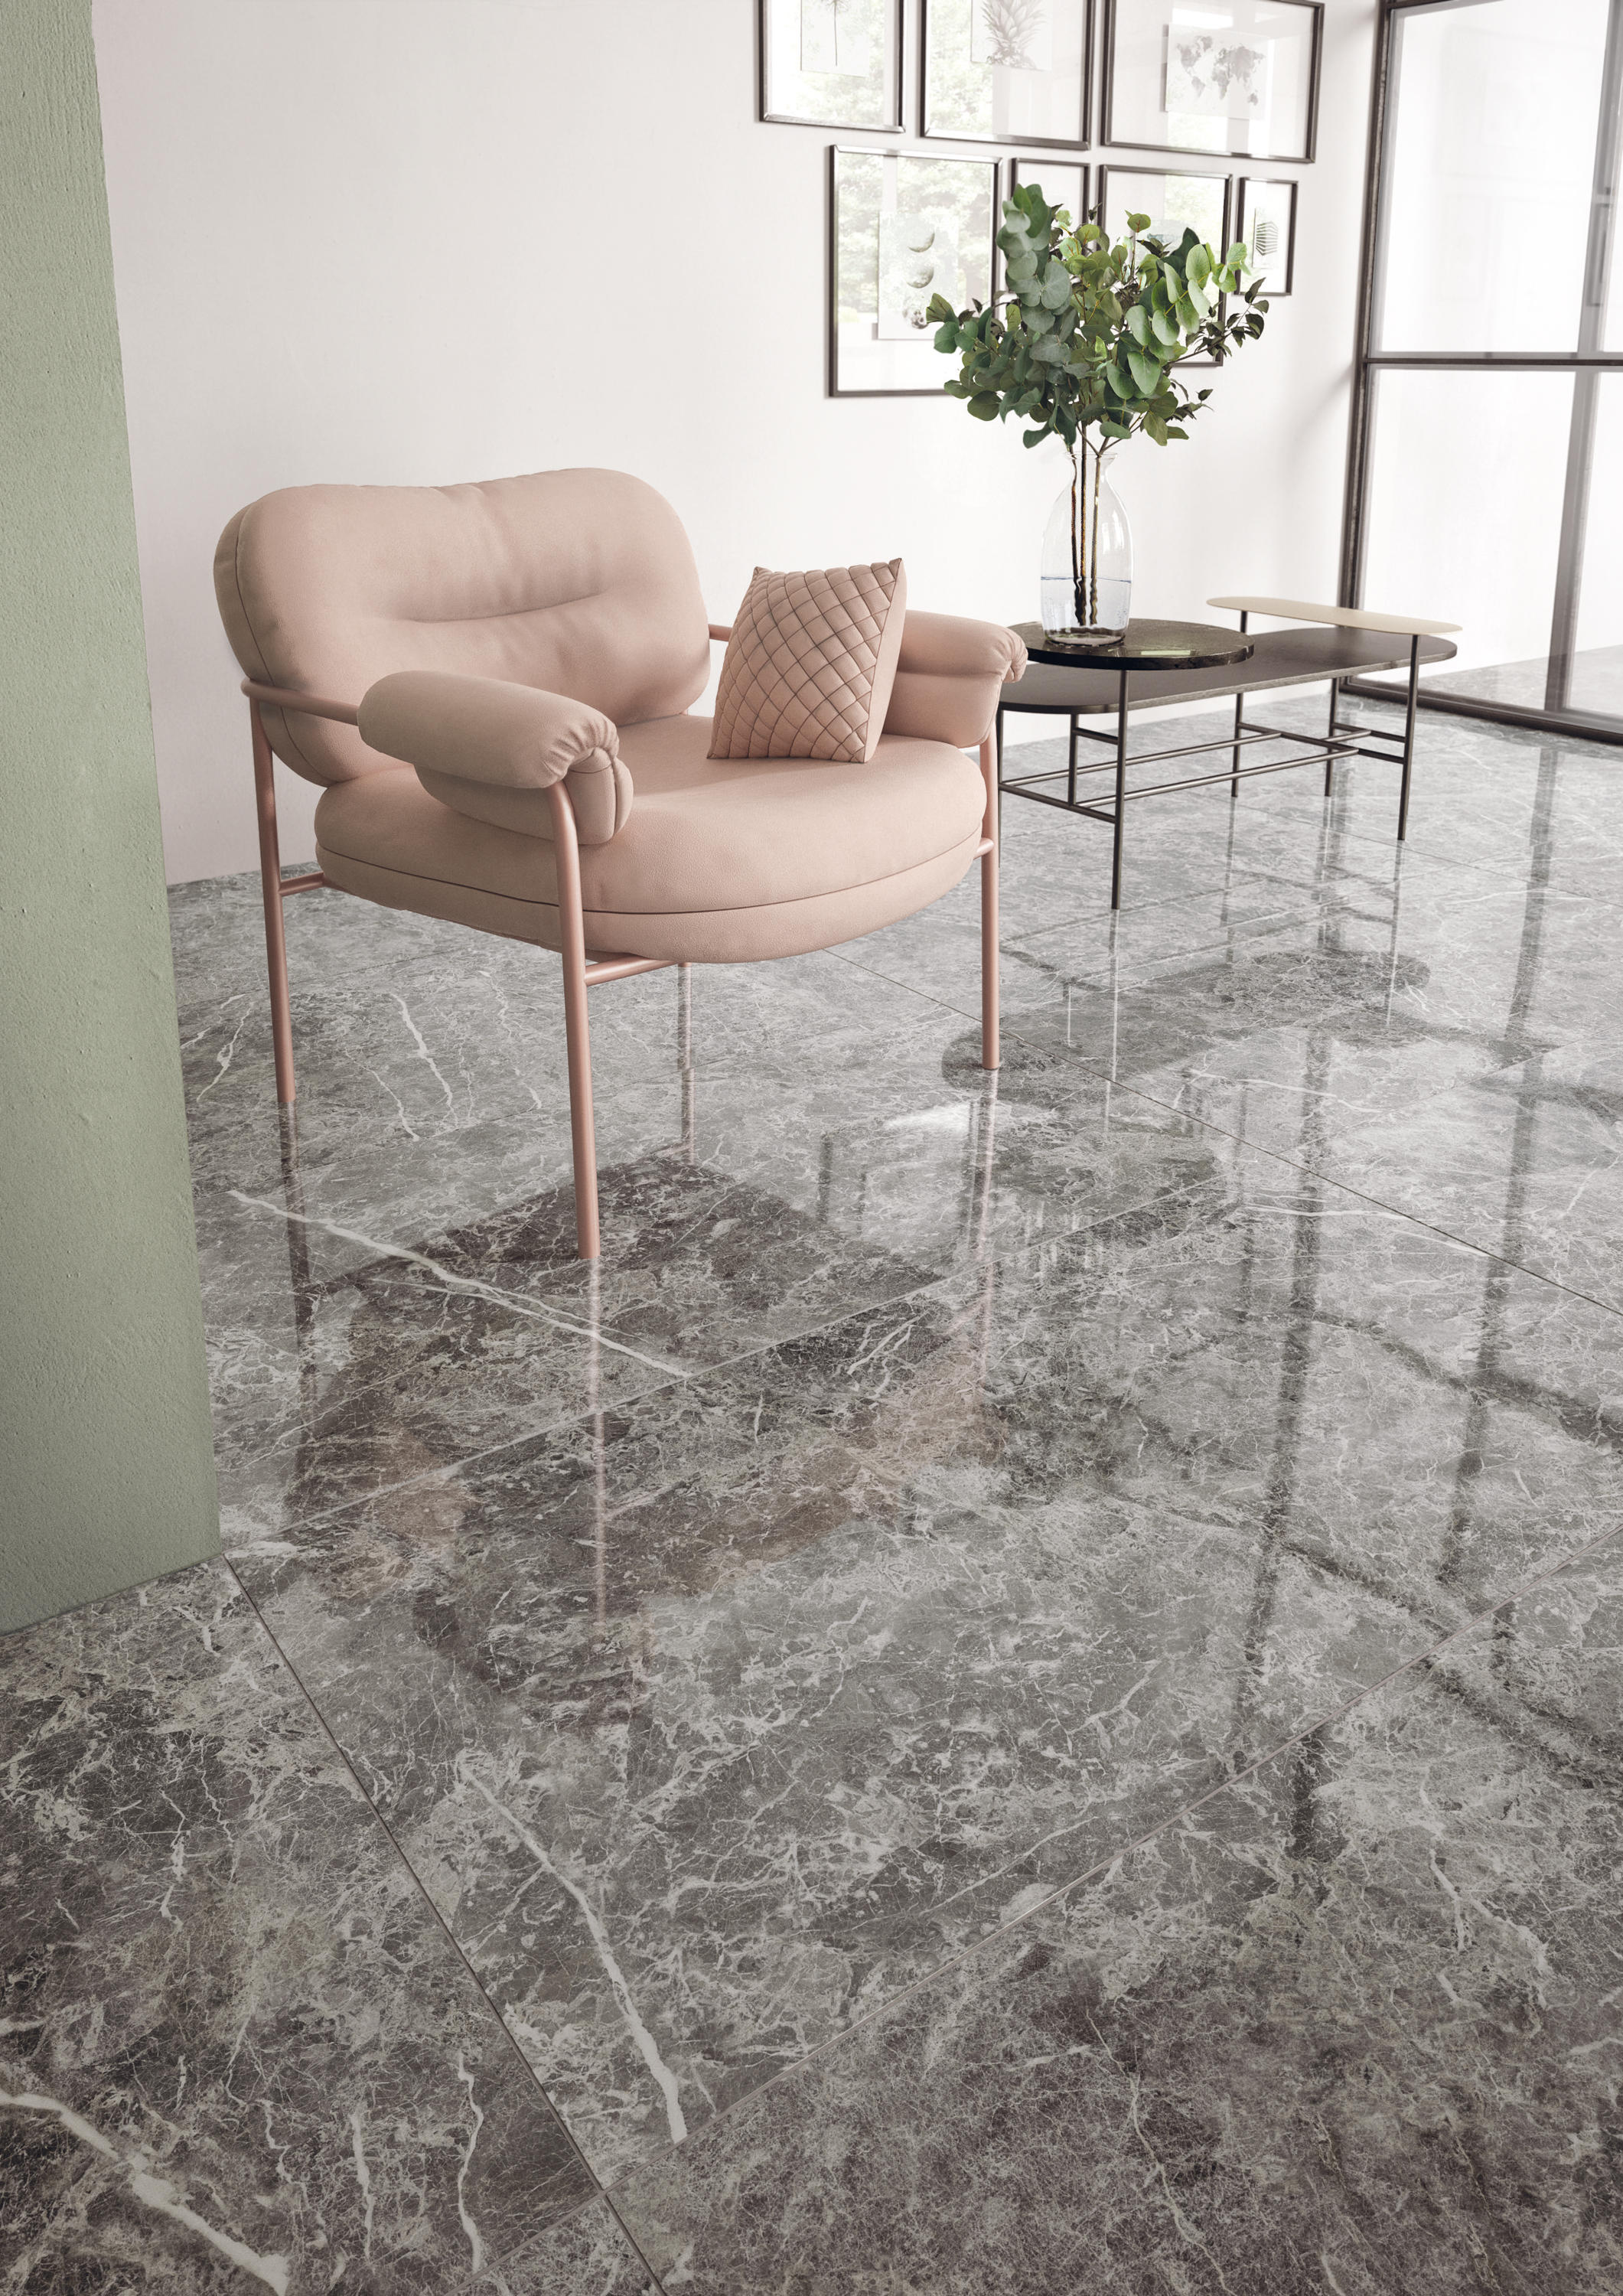 Elements Lux Calacatta Gold Ceramic Tiles From Keope Architonic